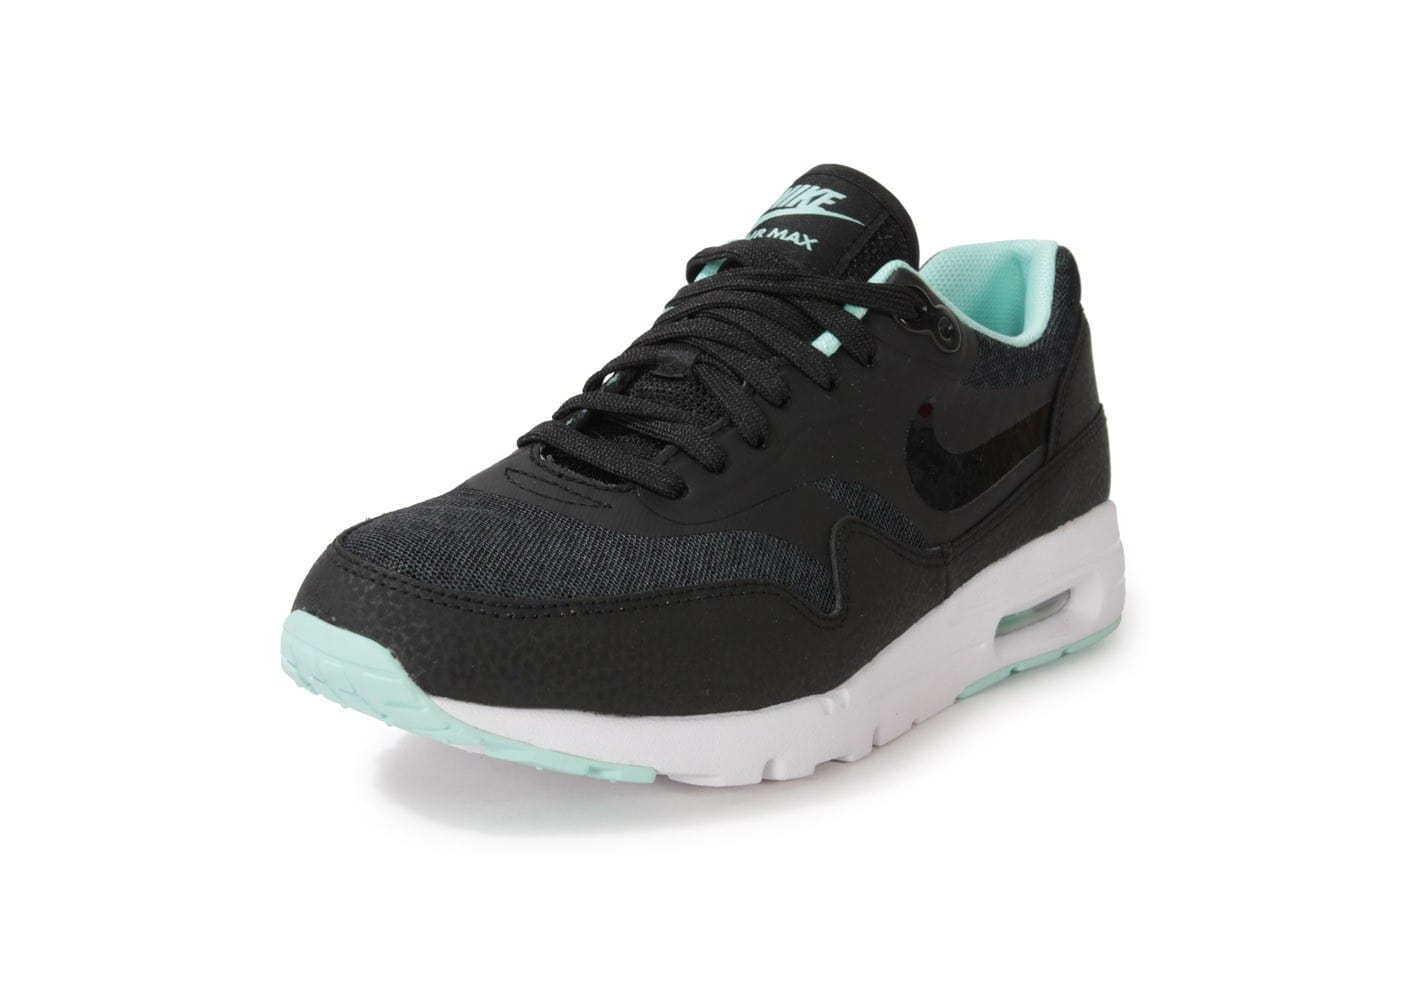 nike air max 1 essential pas cher nike rollerblades bauer. Black Bedroom Furniture Sets. Home Design Ideas